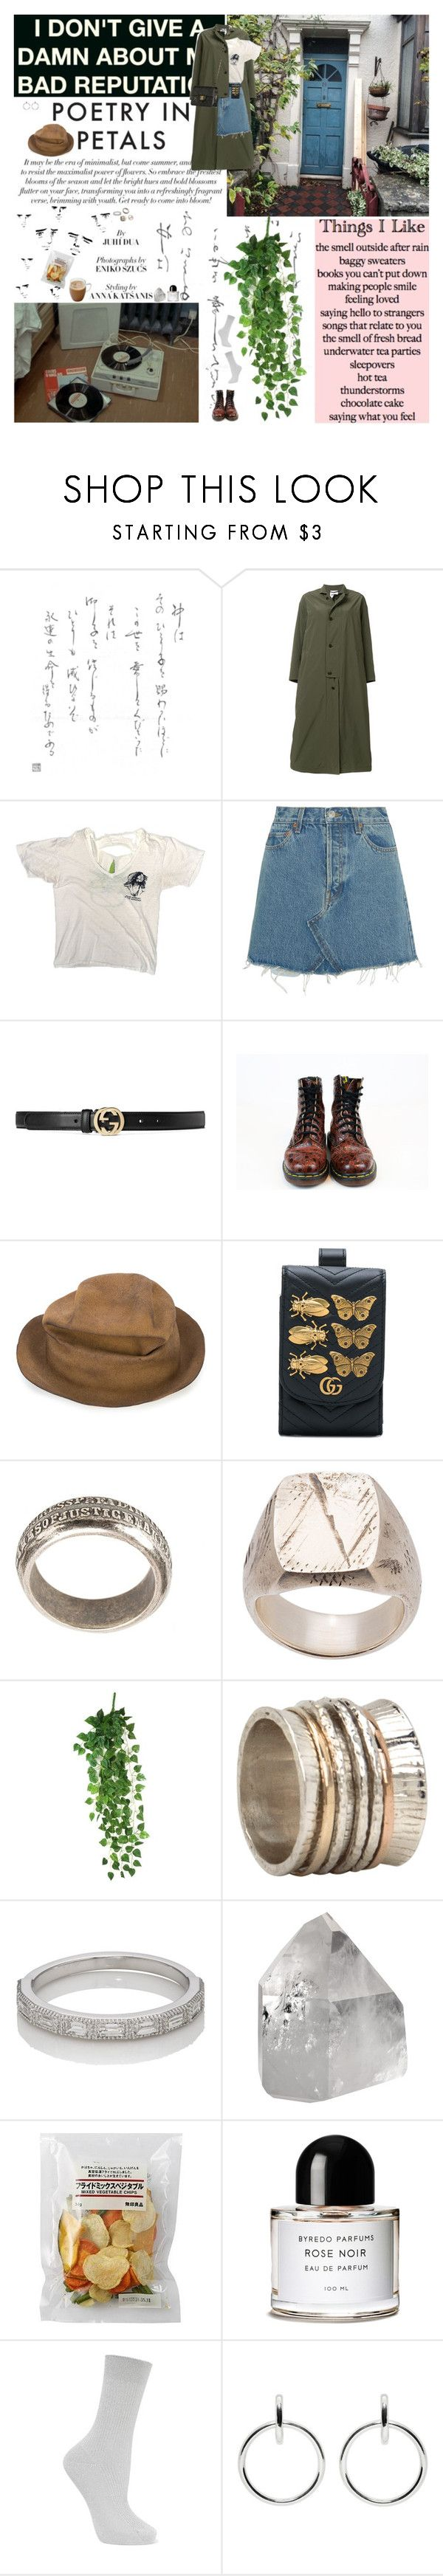 """Music: Y la Bamba – Moral Panic"" by azaliya ❤ liked on Polyvore featuring Aspesi, RE/DONE, Gucci, Dr. Martens, Horisaki, Fraiche, Tobias Wistisen, Werkstatt:München, MeditationRings and My Story"